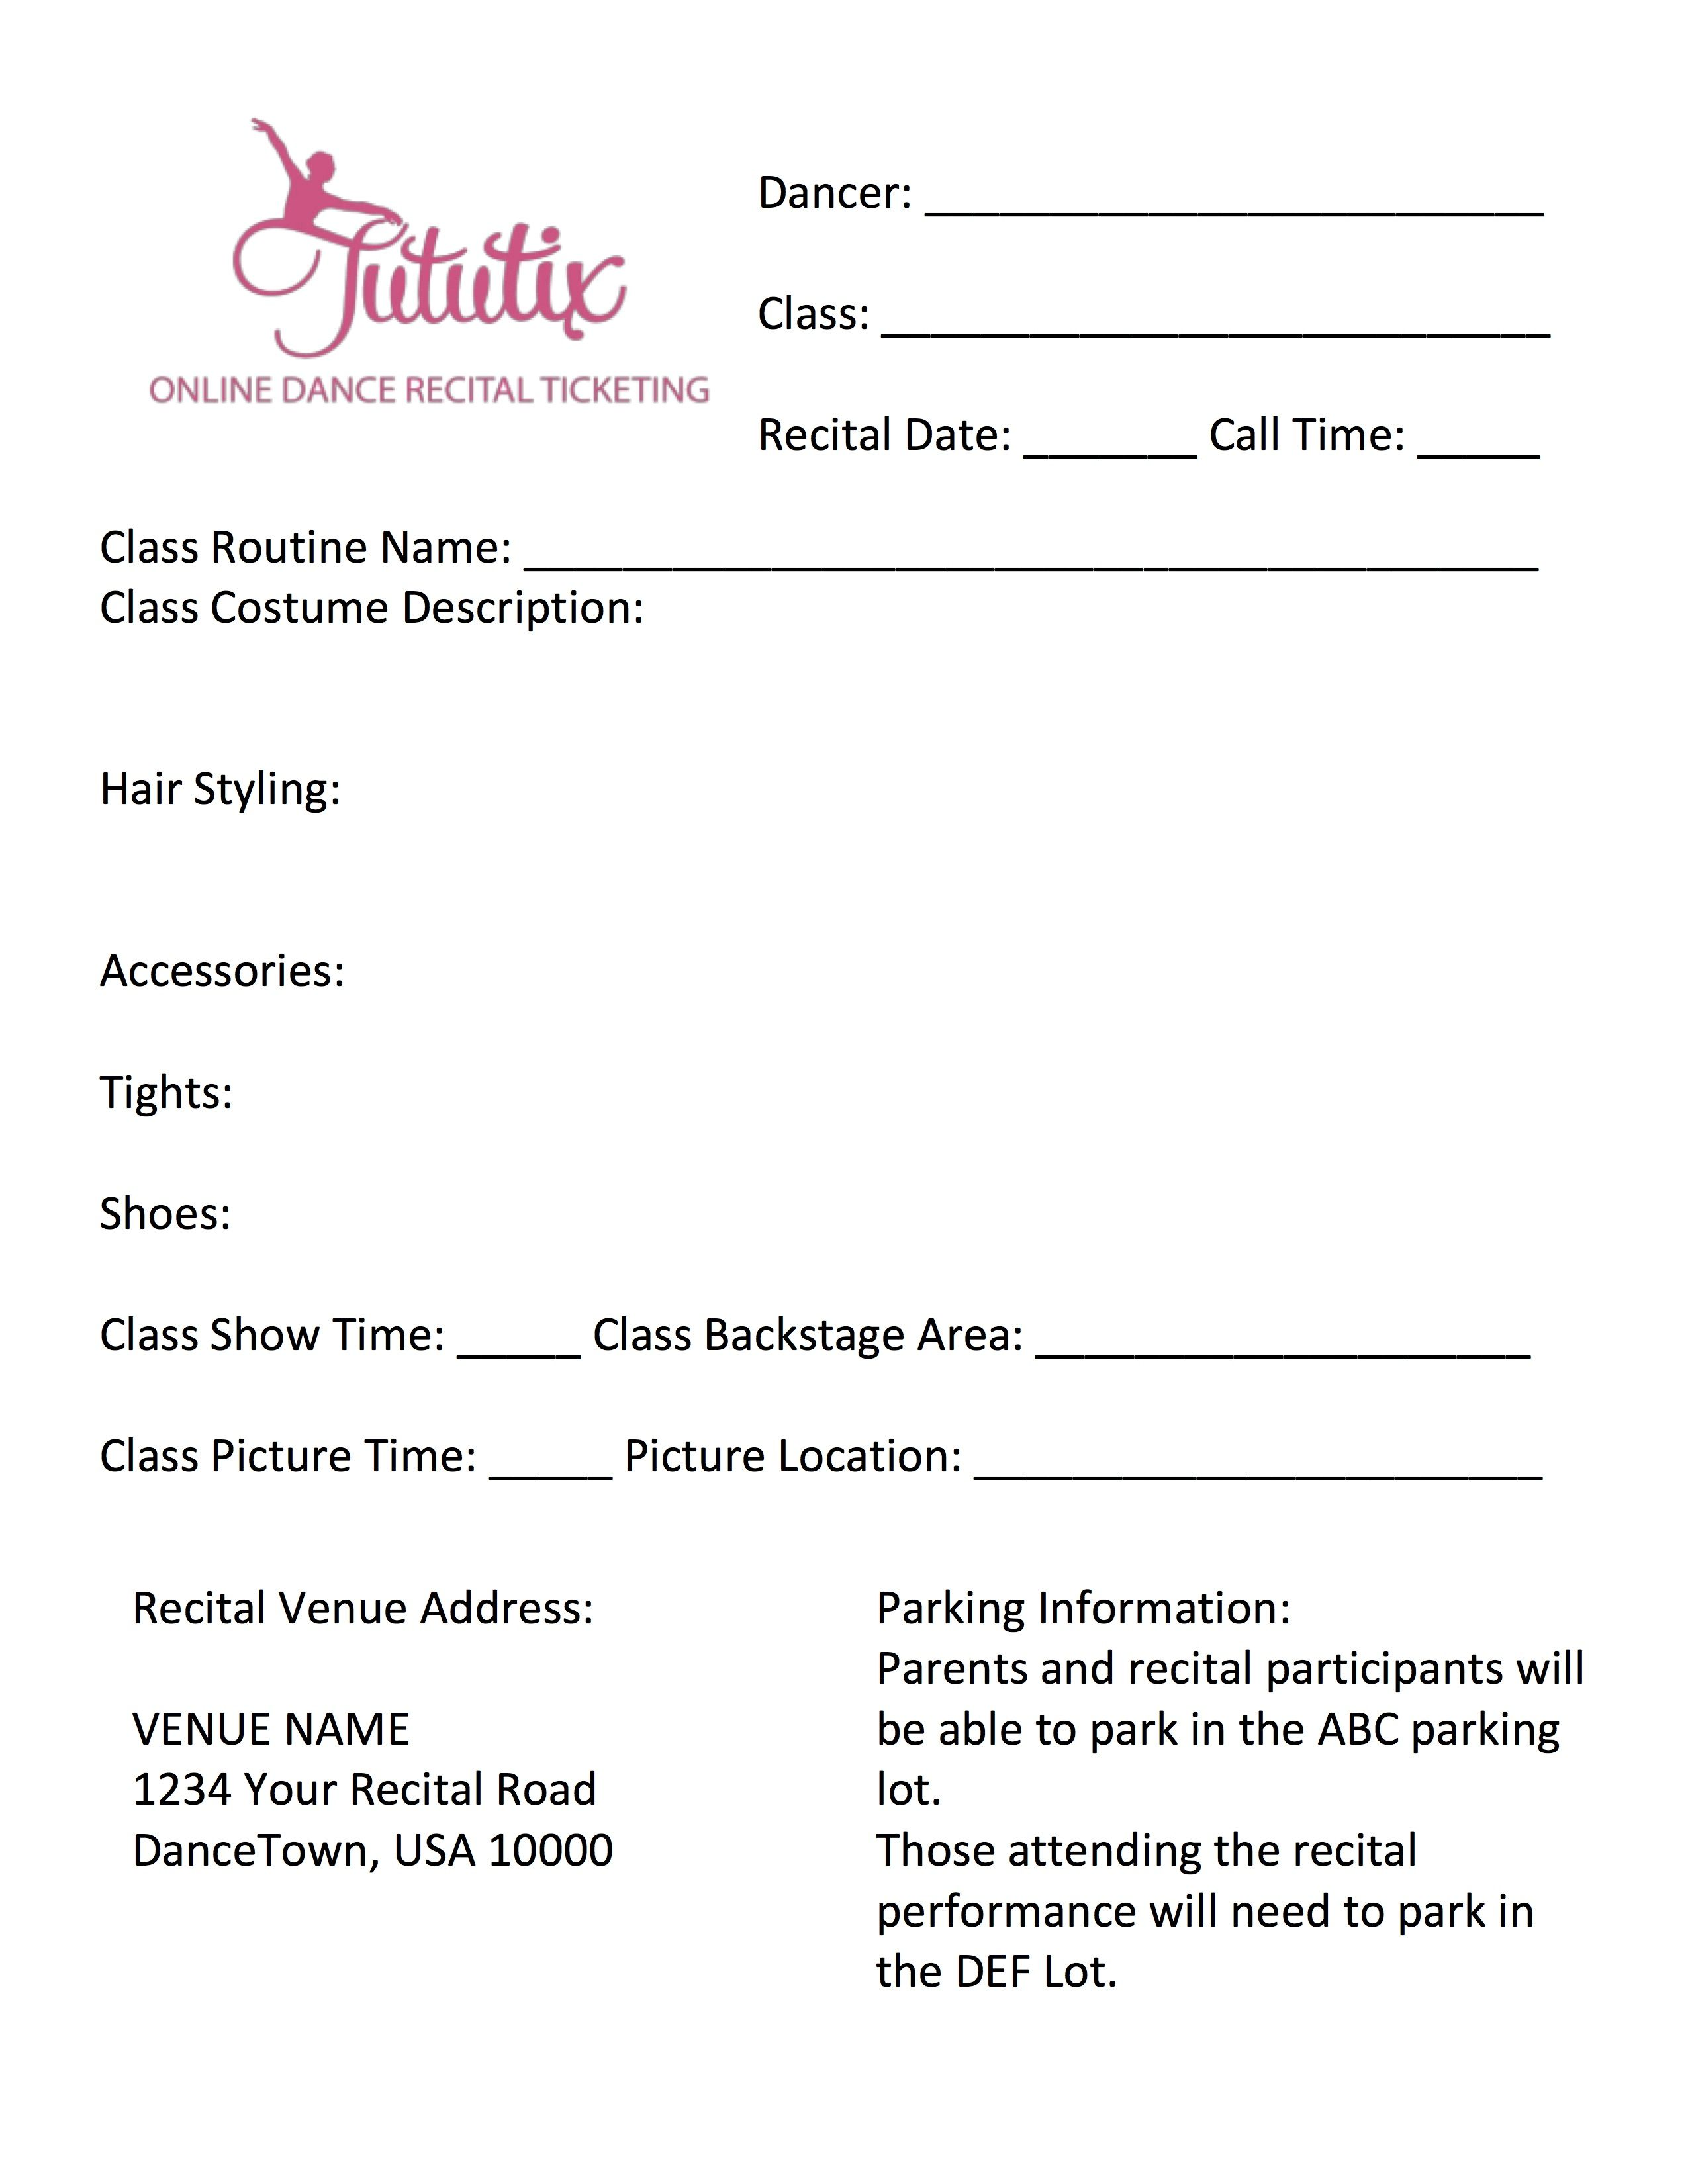 Dance Recital Information Sheet Template